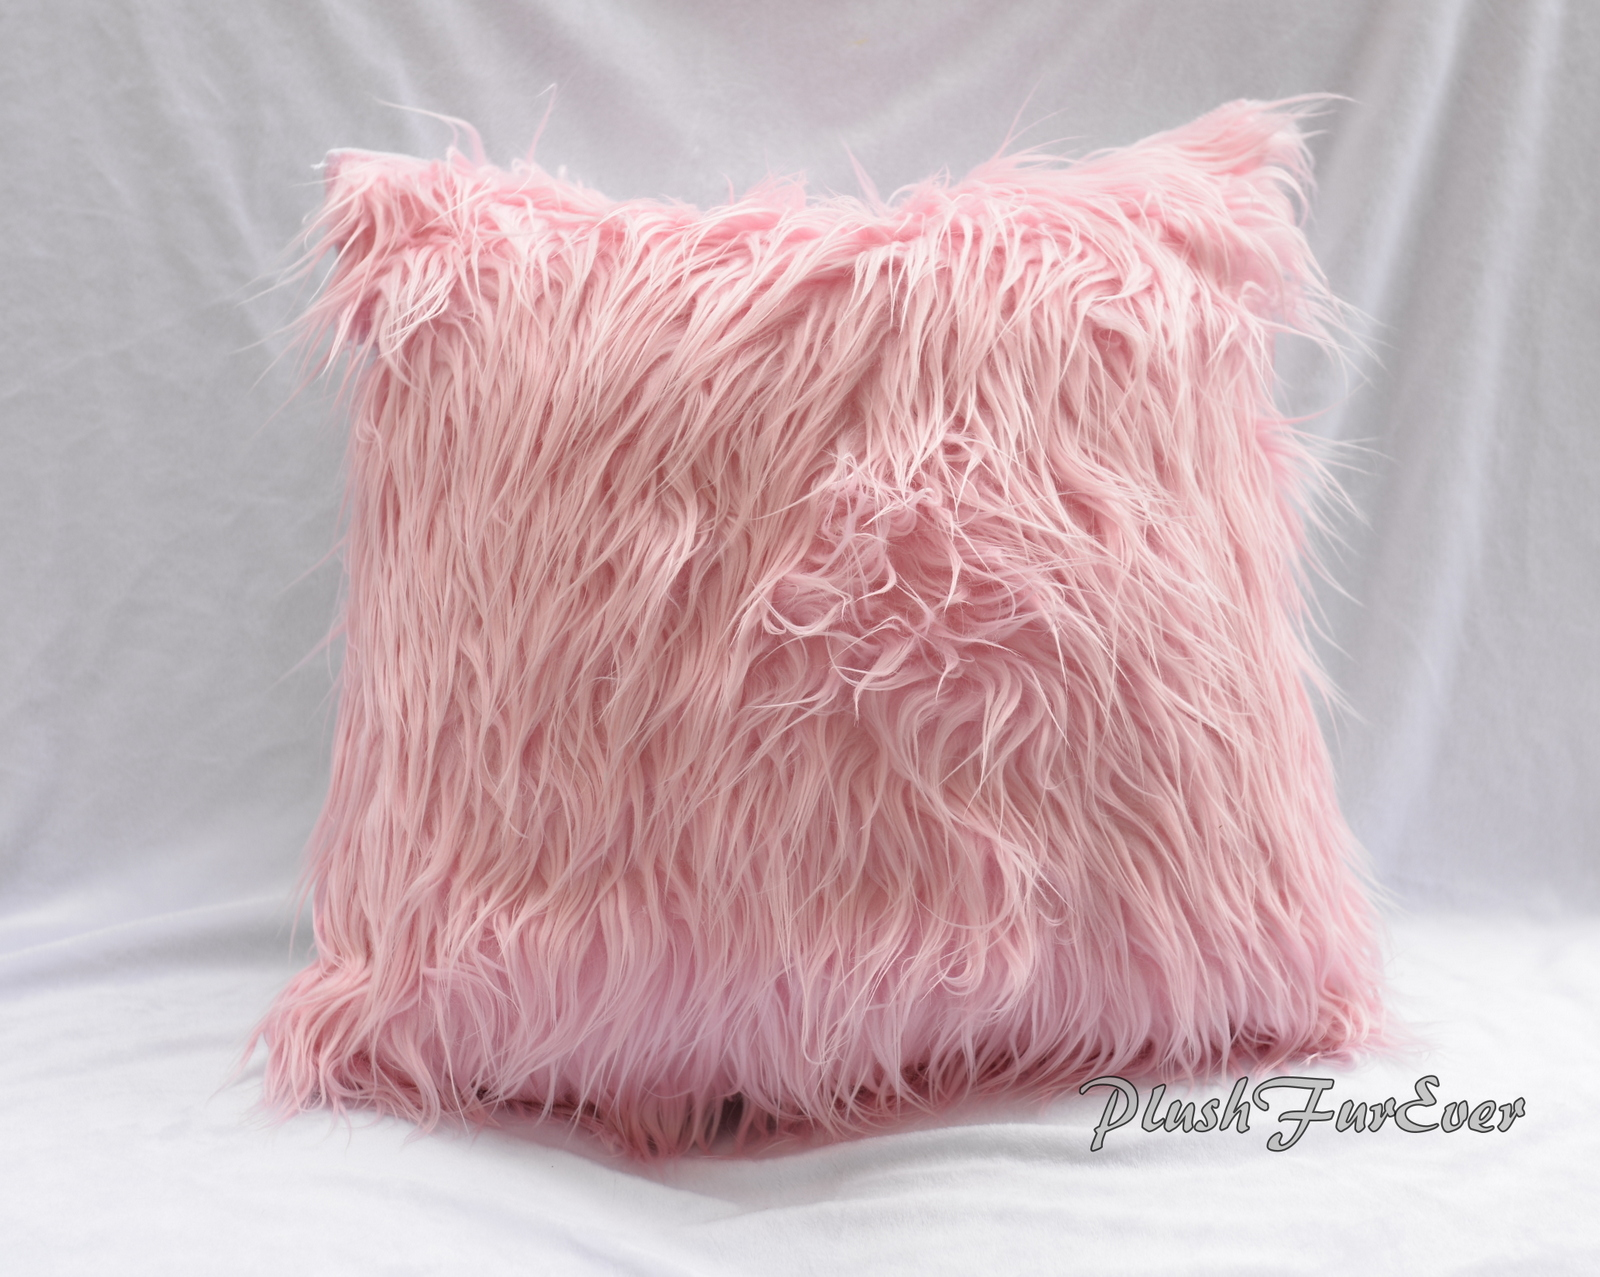 Light Pink Faux Fur Home Decor Pillows 18 X 18 Inserts Included Mongolian Frost Fur Sofa Bed Couch Luxury Fur Decor Sold By Plushfurever